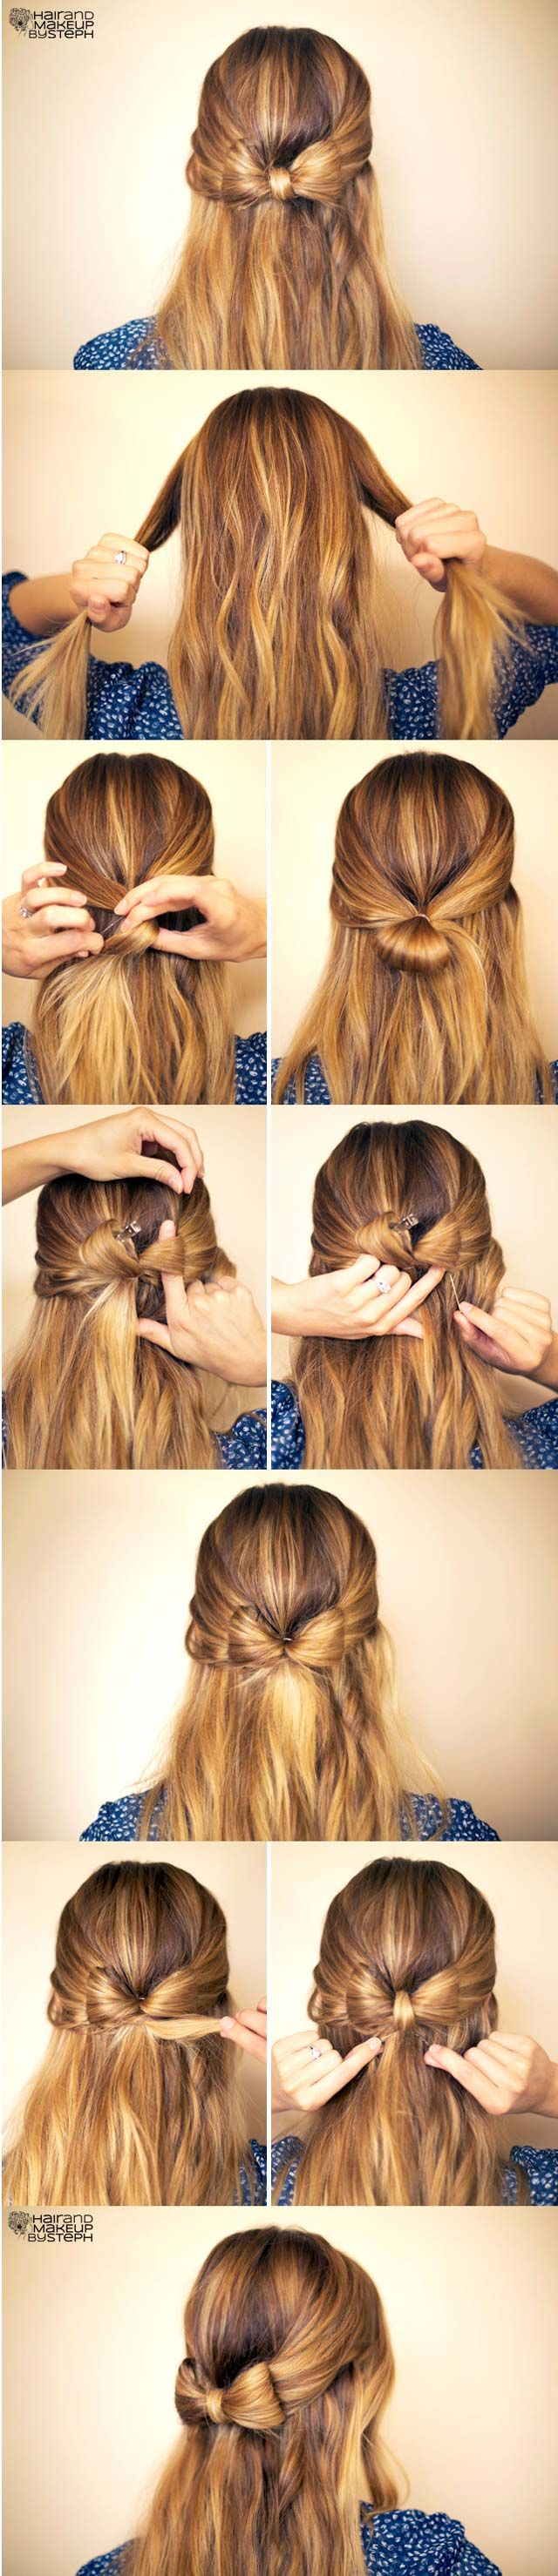 Diy Your Step By Step For The Best Cute Hairstyles Long Hair Styles Hair Styles Hair Tutorial